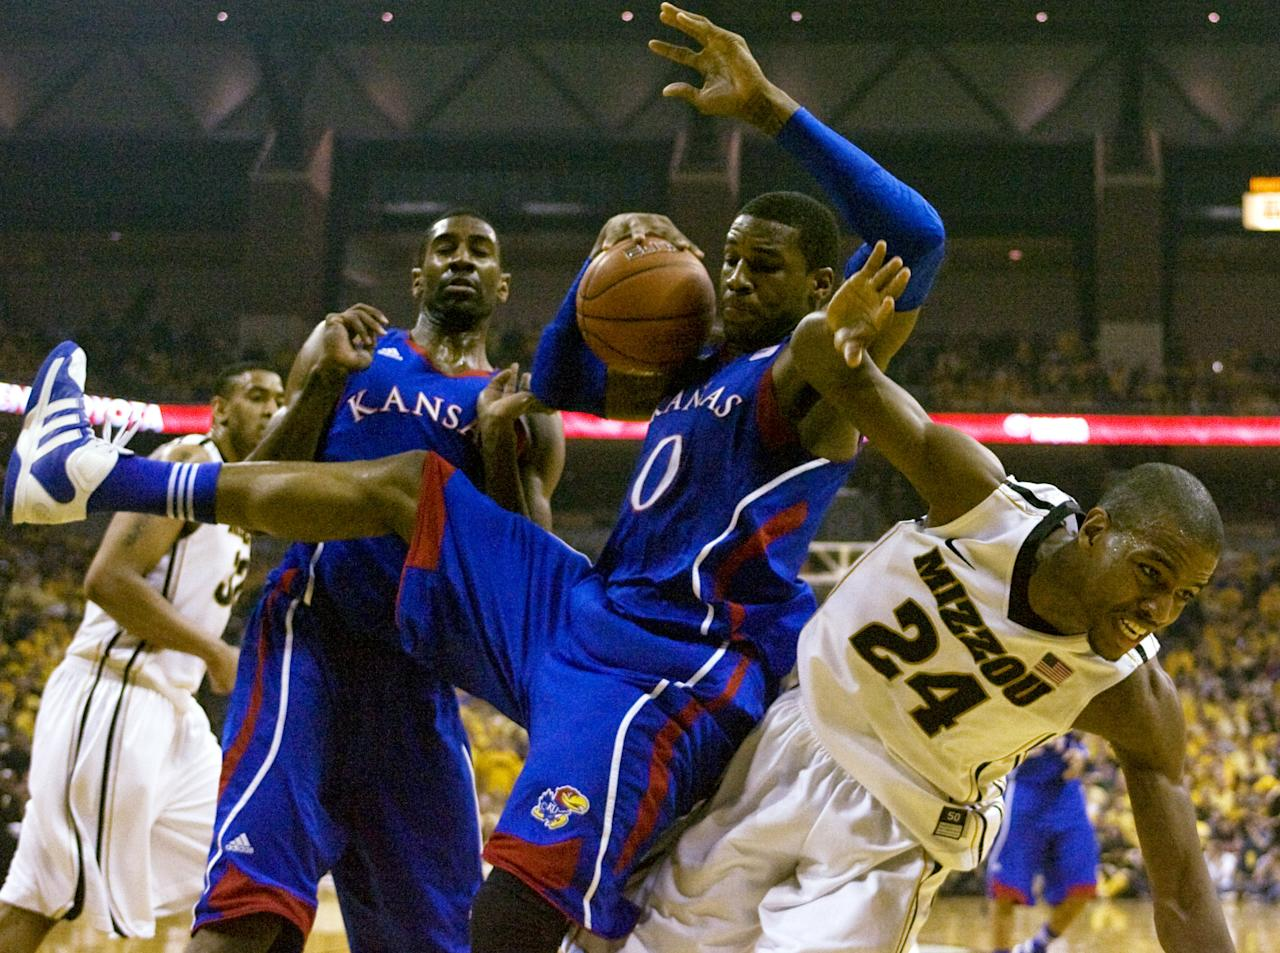 COLUMBIA, MO - FEBRUARY 04:    Thomas Robinson #0 of the Kansas Jayhawks grabs a rebound from Kim English #24 of the Missouri Tigers during the first half at Mizzou Arena on February 4, 2012 in Columbia, Missouri. (Photo by Ed Zurga/Getty Images)